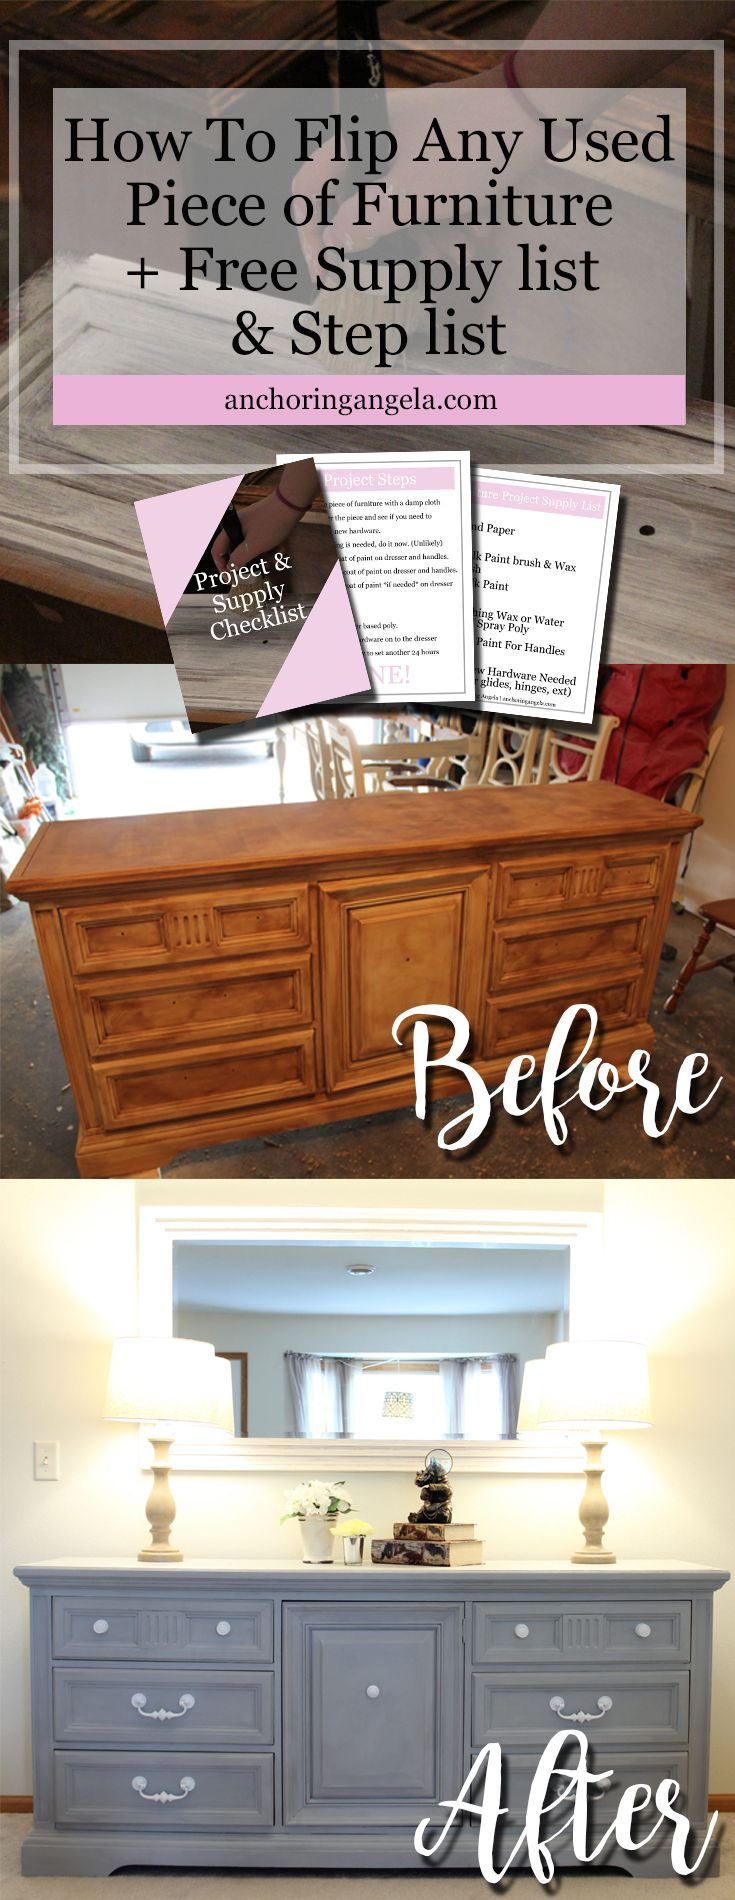 How To Flip Any Piece Of Used Furniture